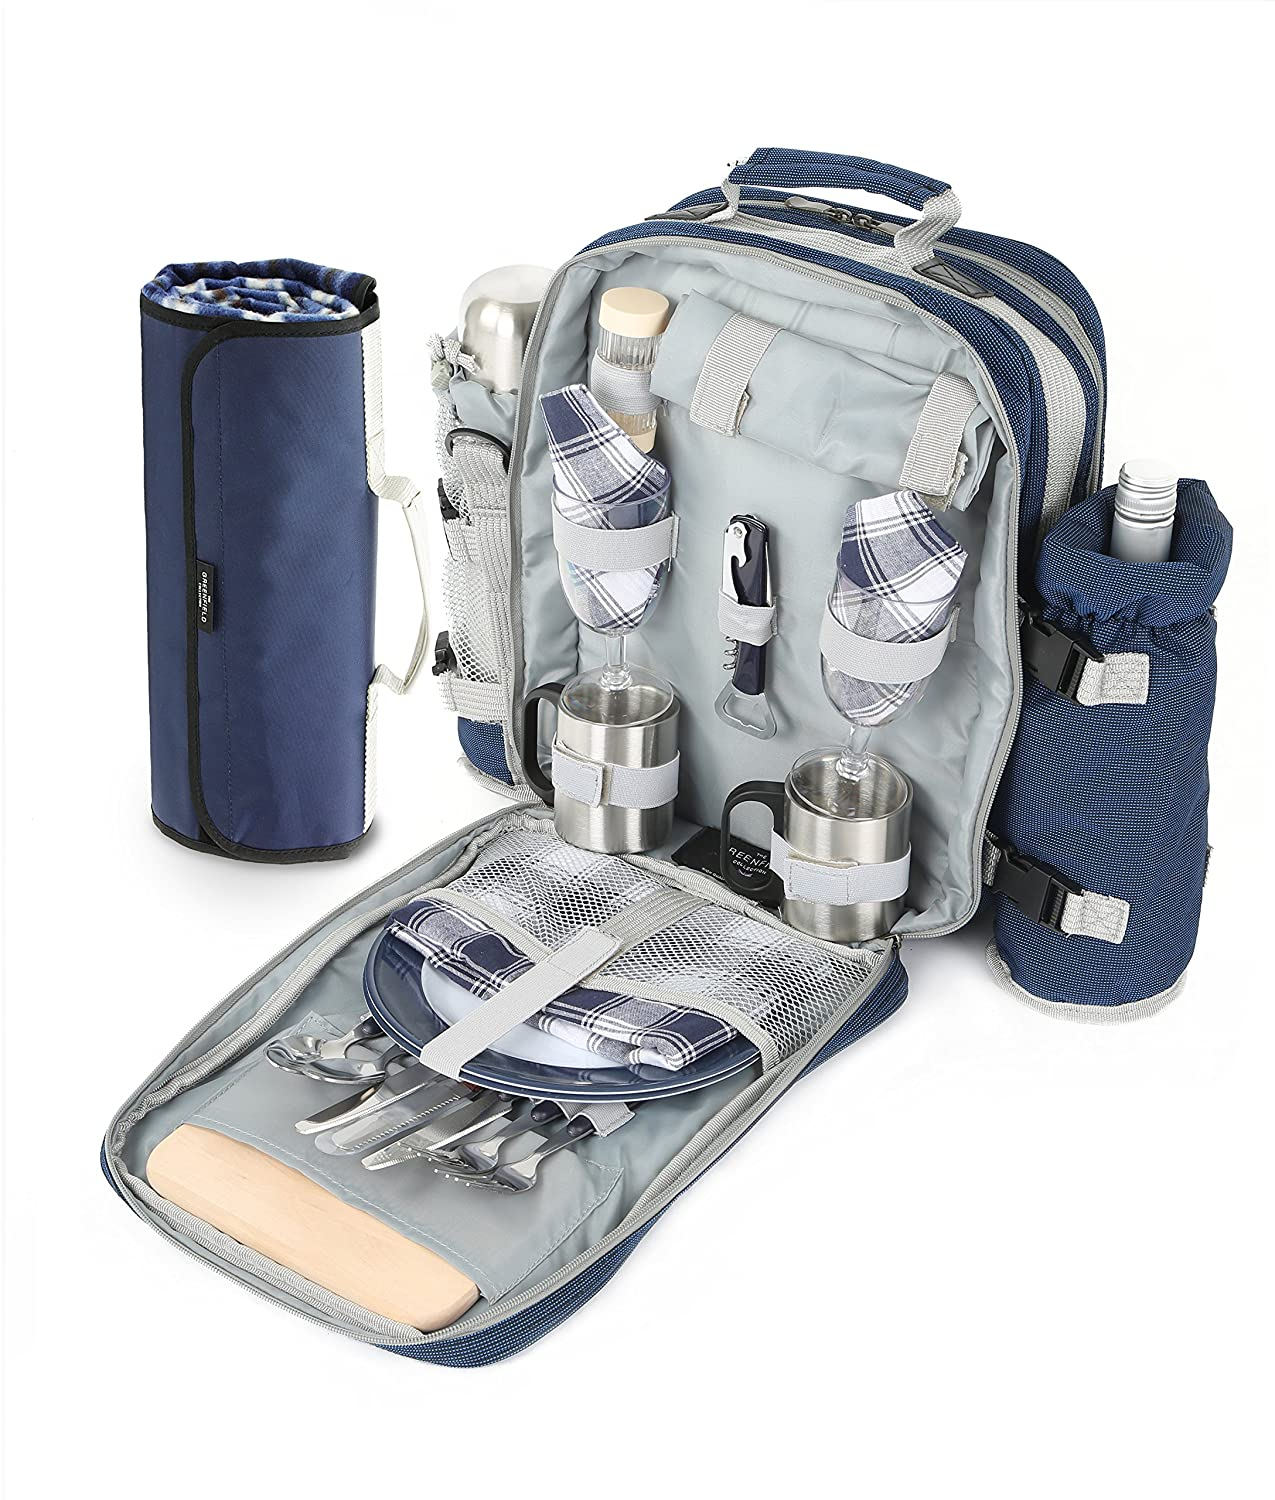 Greenfield Collection Super Deluxe Picnic Backpack Hamper for Two People in Midnight Blue with Matching Picnic Blanket BPSD2DBHPW